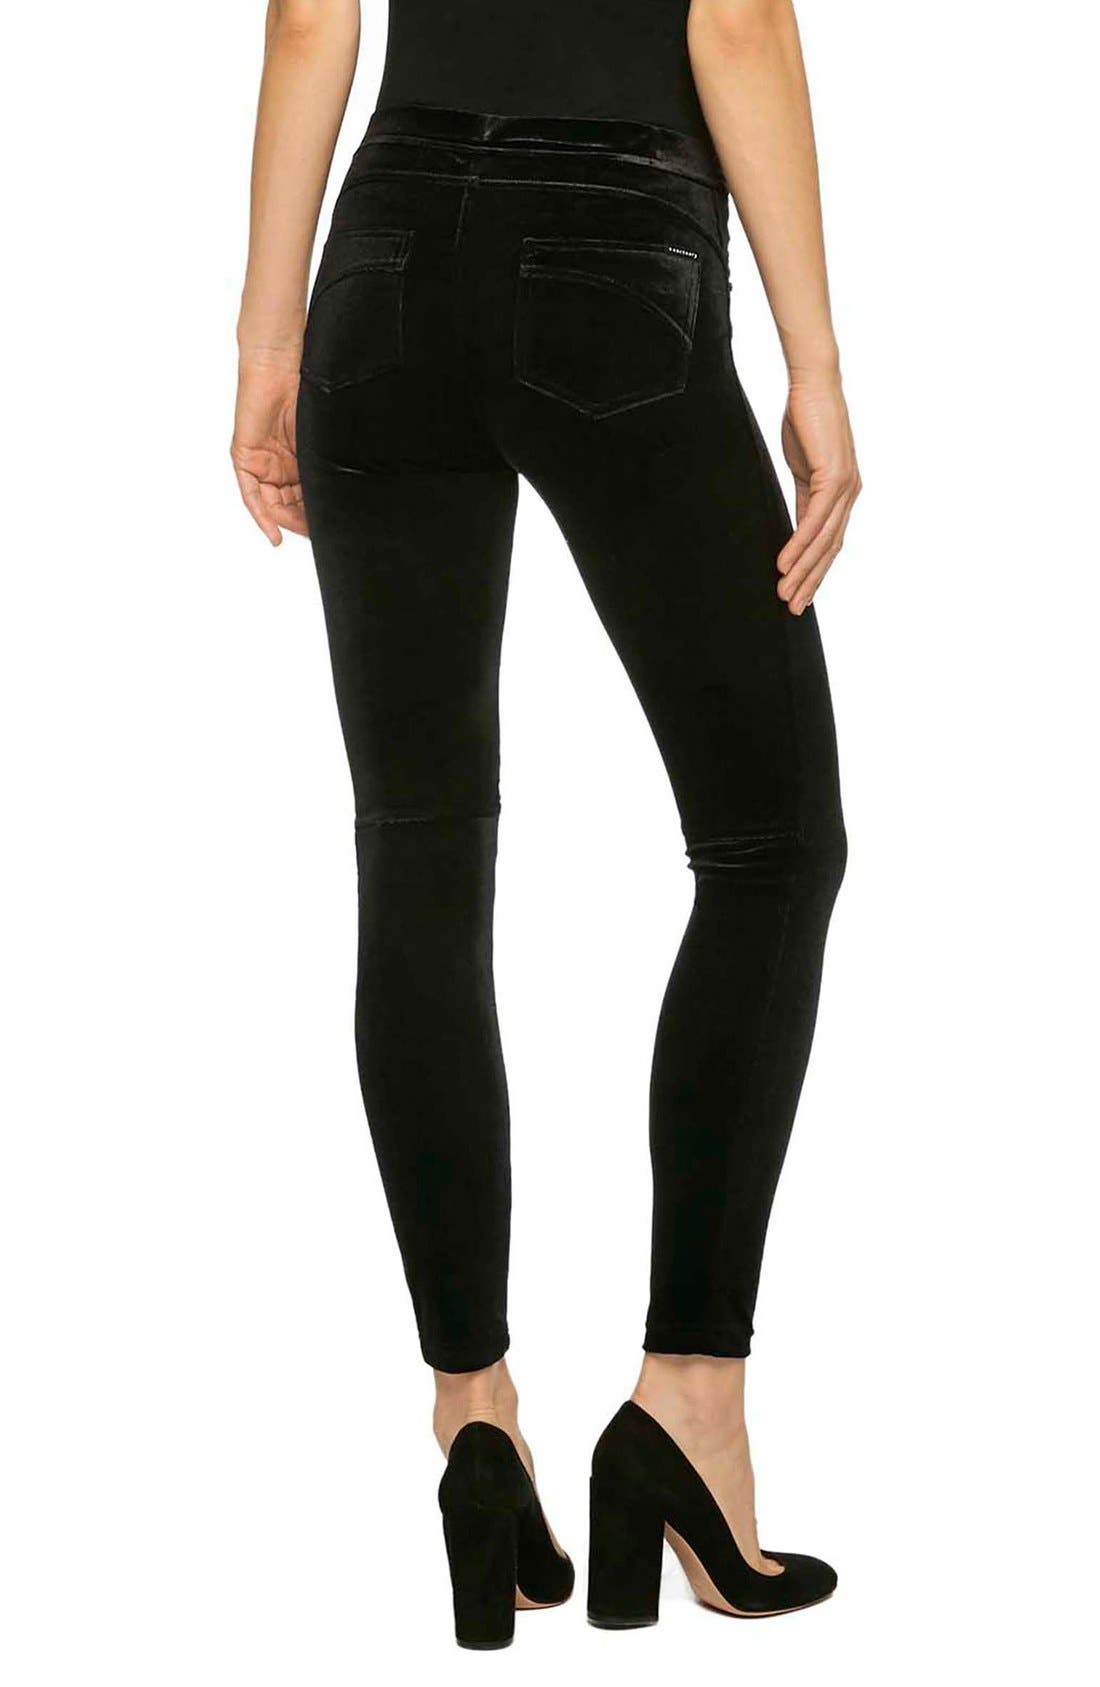 Grease Velvet Leggings,                             Alternate thumbnail 2, color,                             Solid Black Velvet